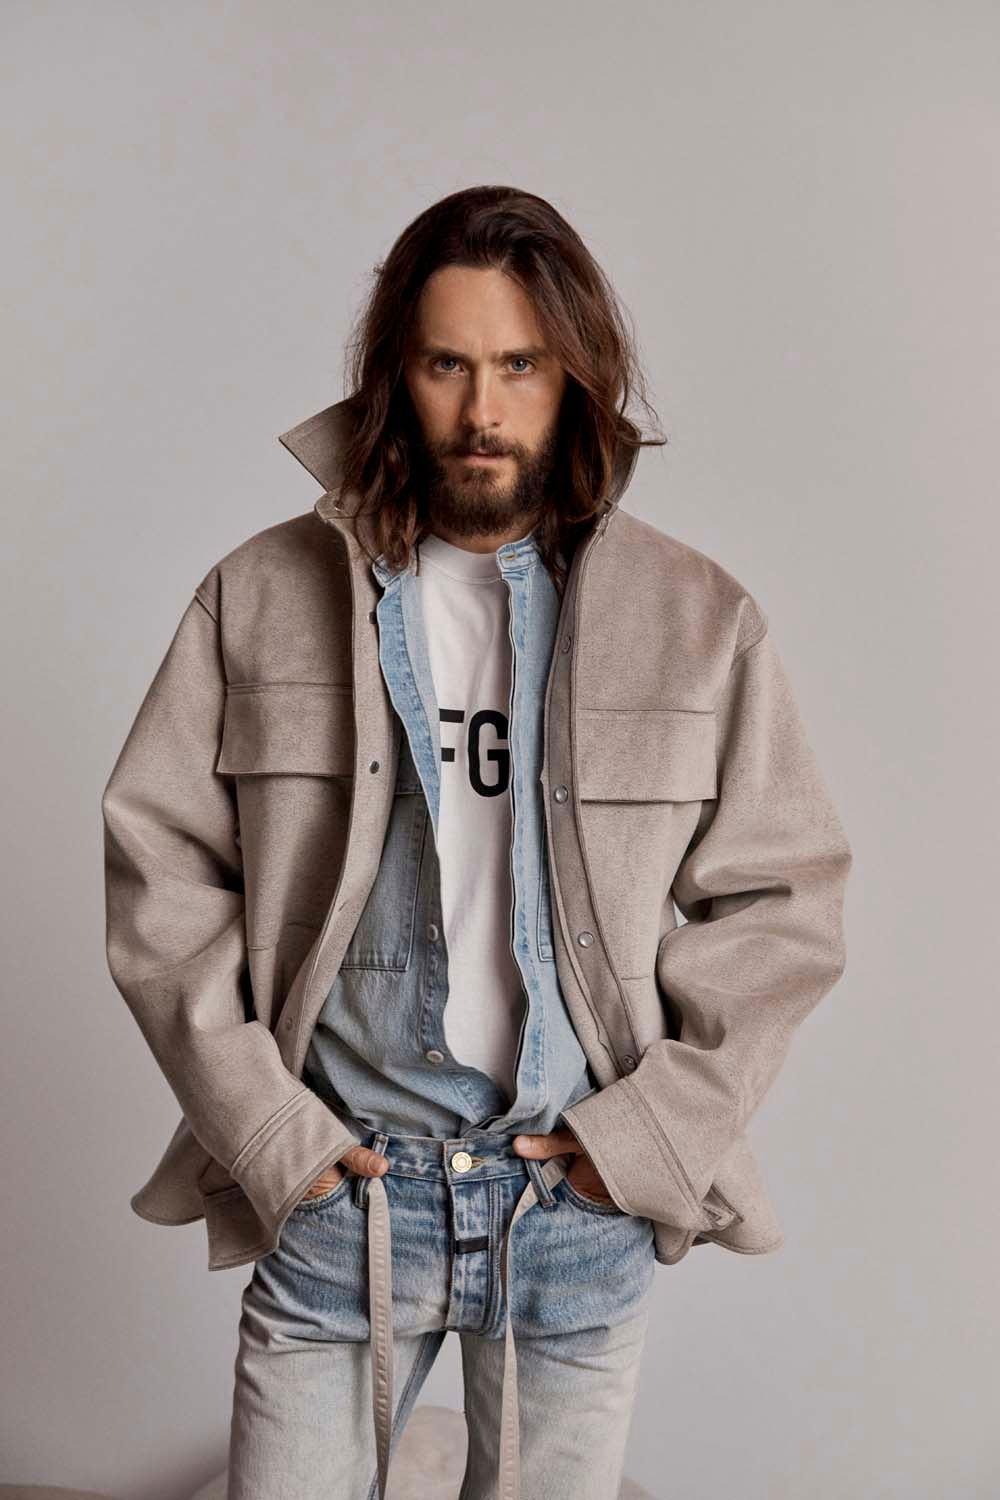 https_%2F%2Fhypebeast.com%2Fimage%2F2018%2F09%2Ffear-of-god-6-sixth-collection-jared-leto-nike-03.jpg